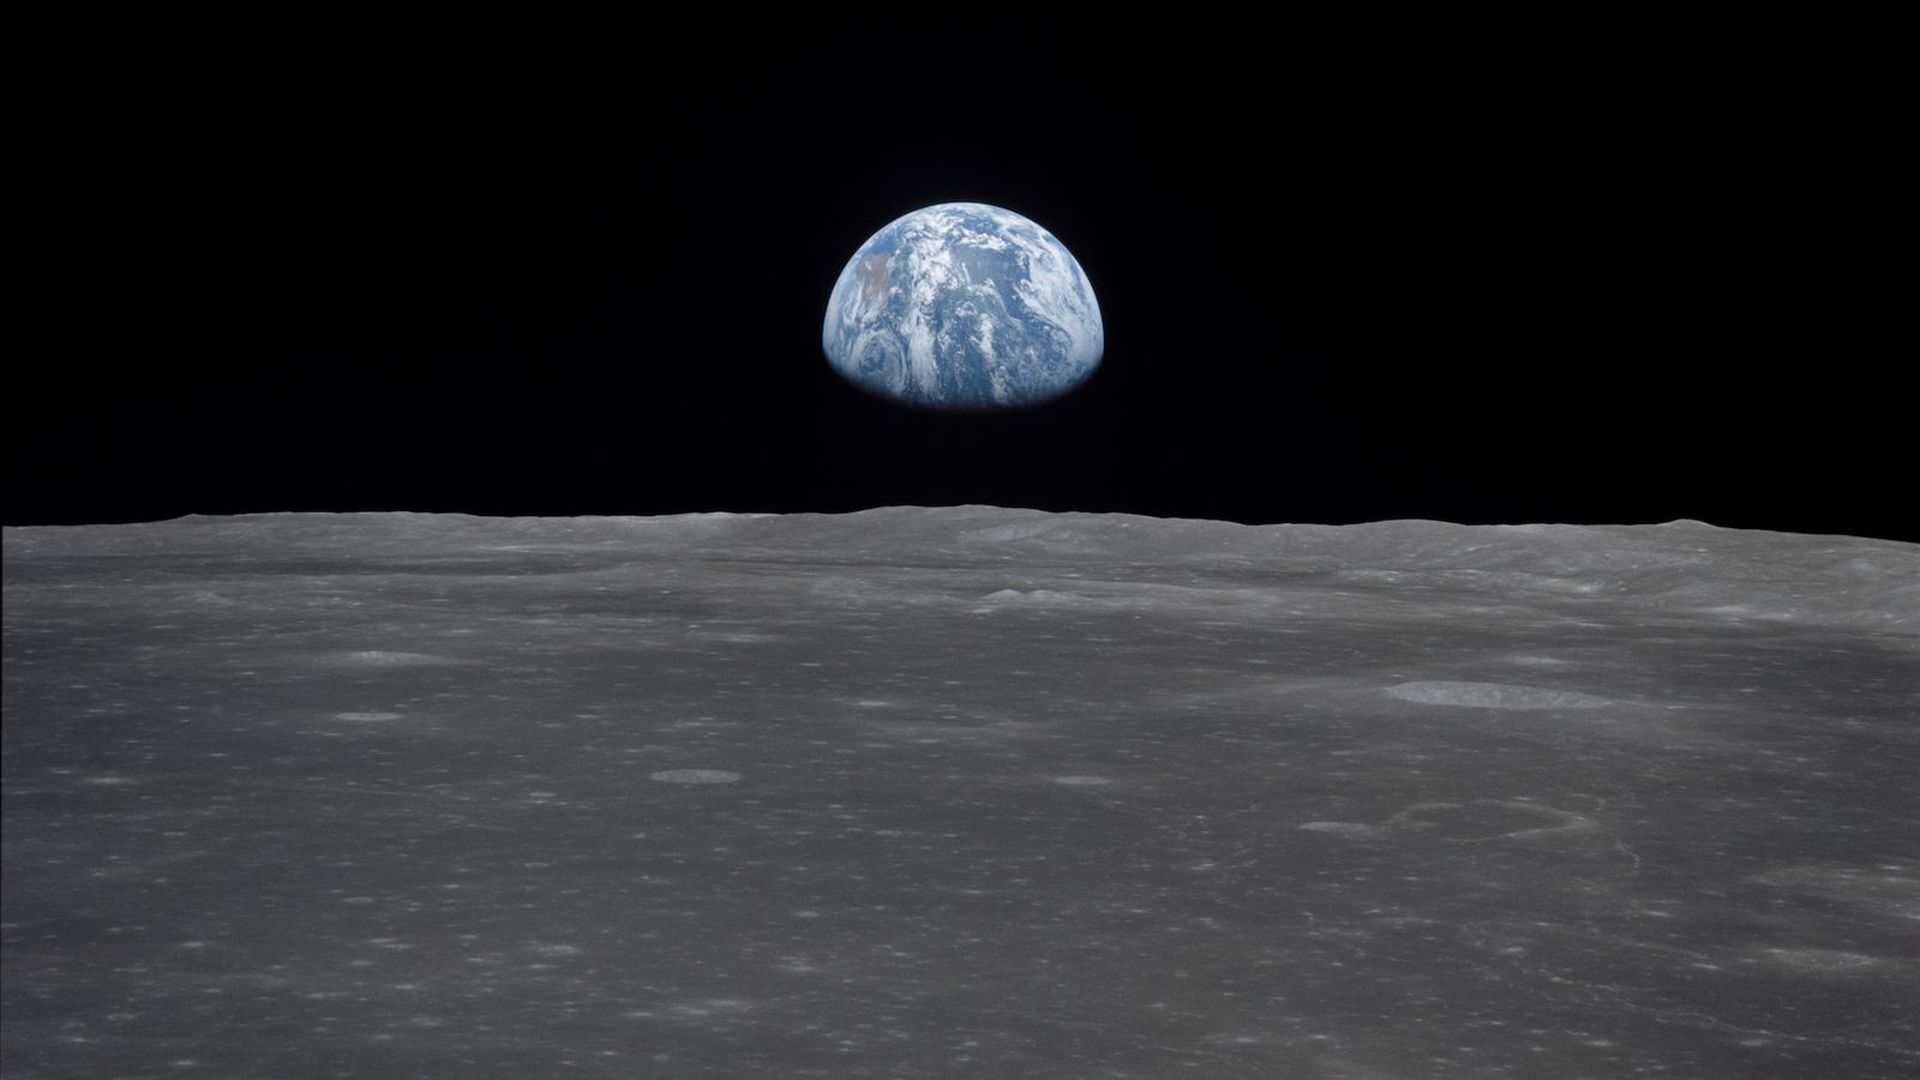 Earth rising above the moon.